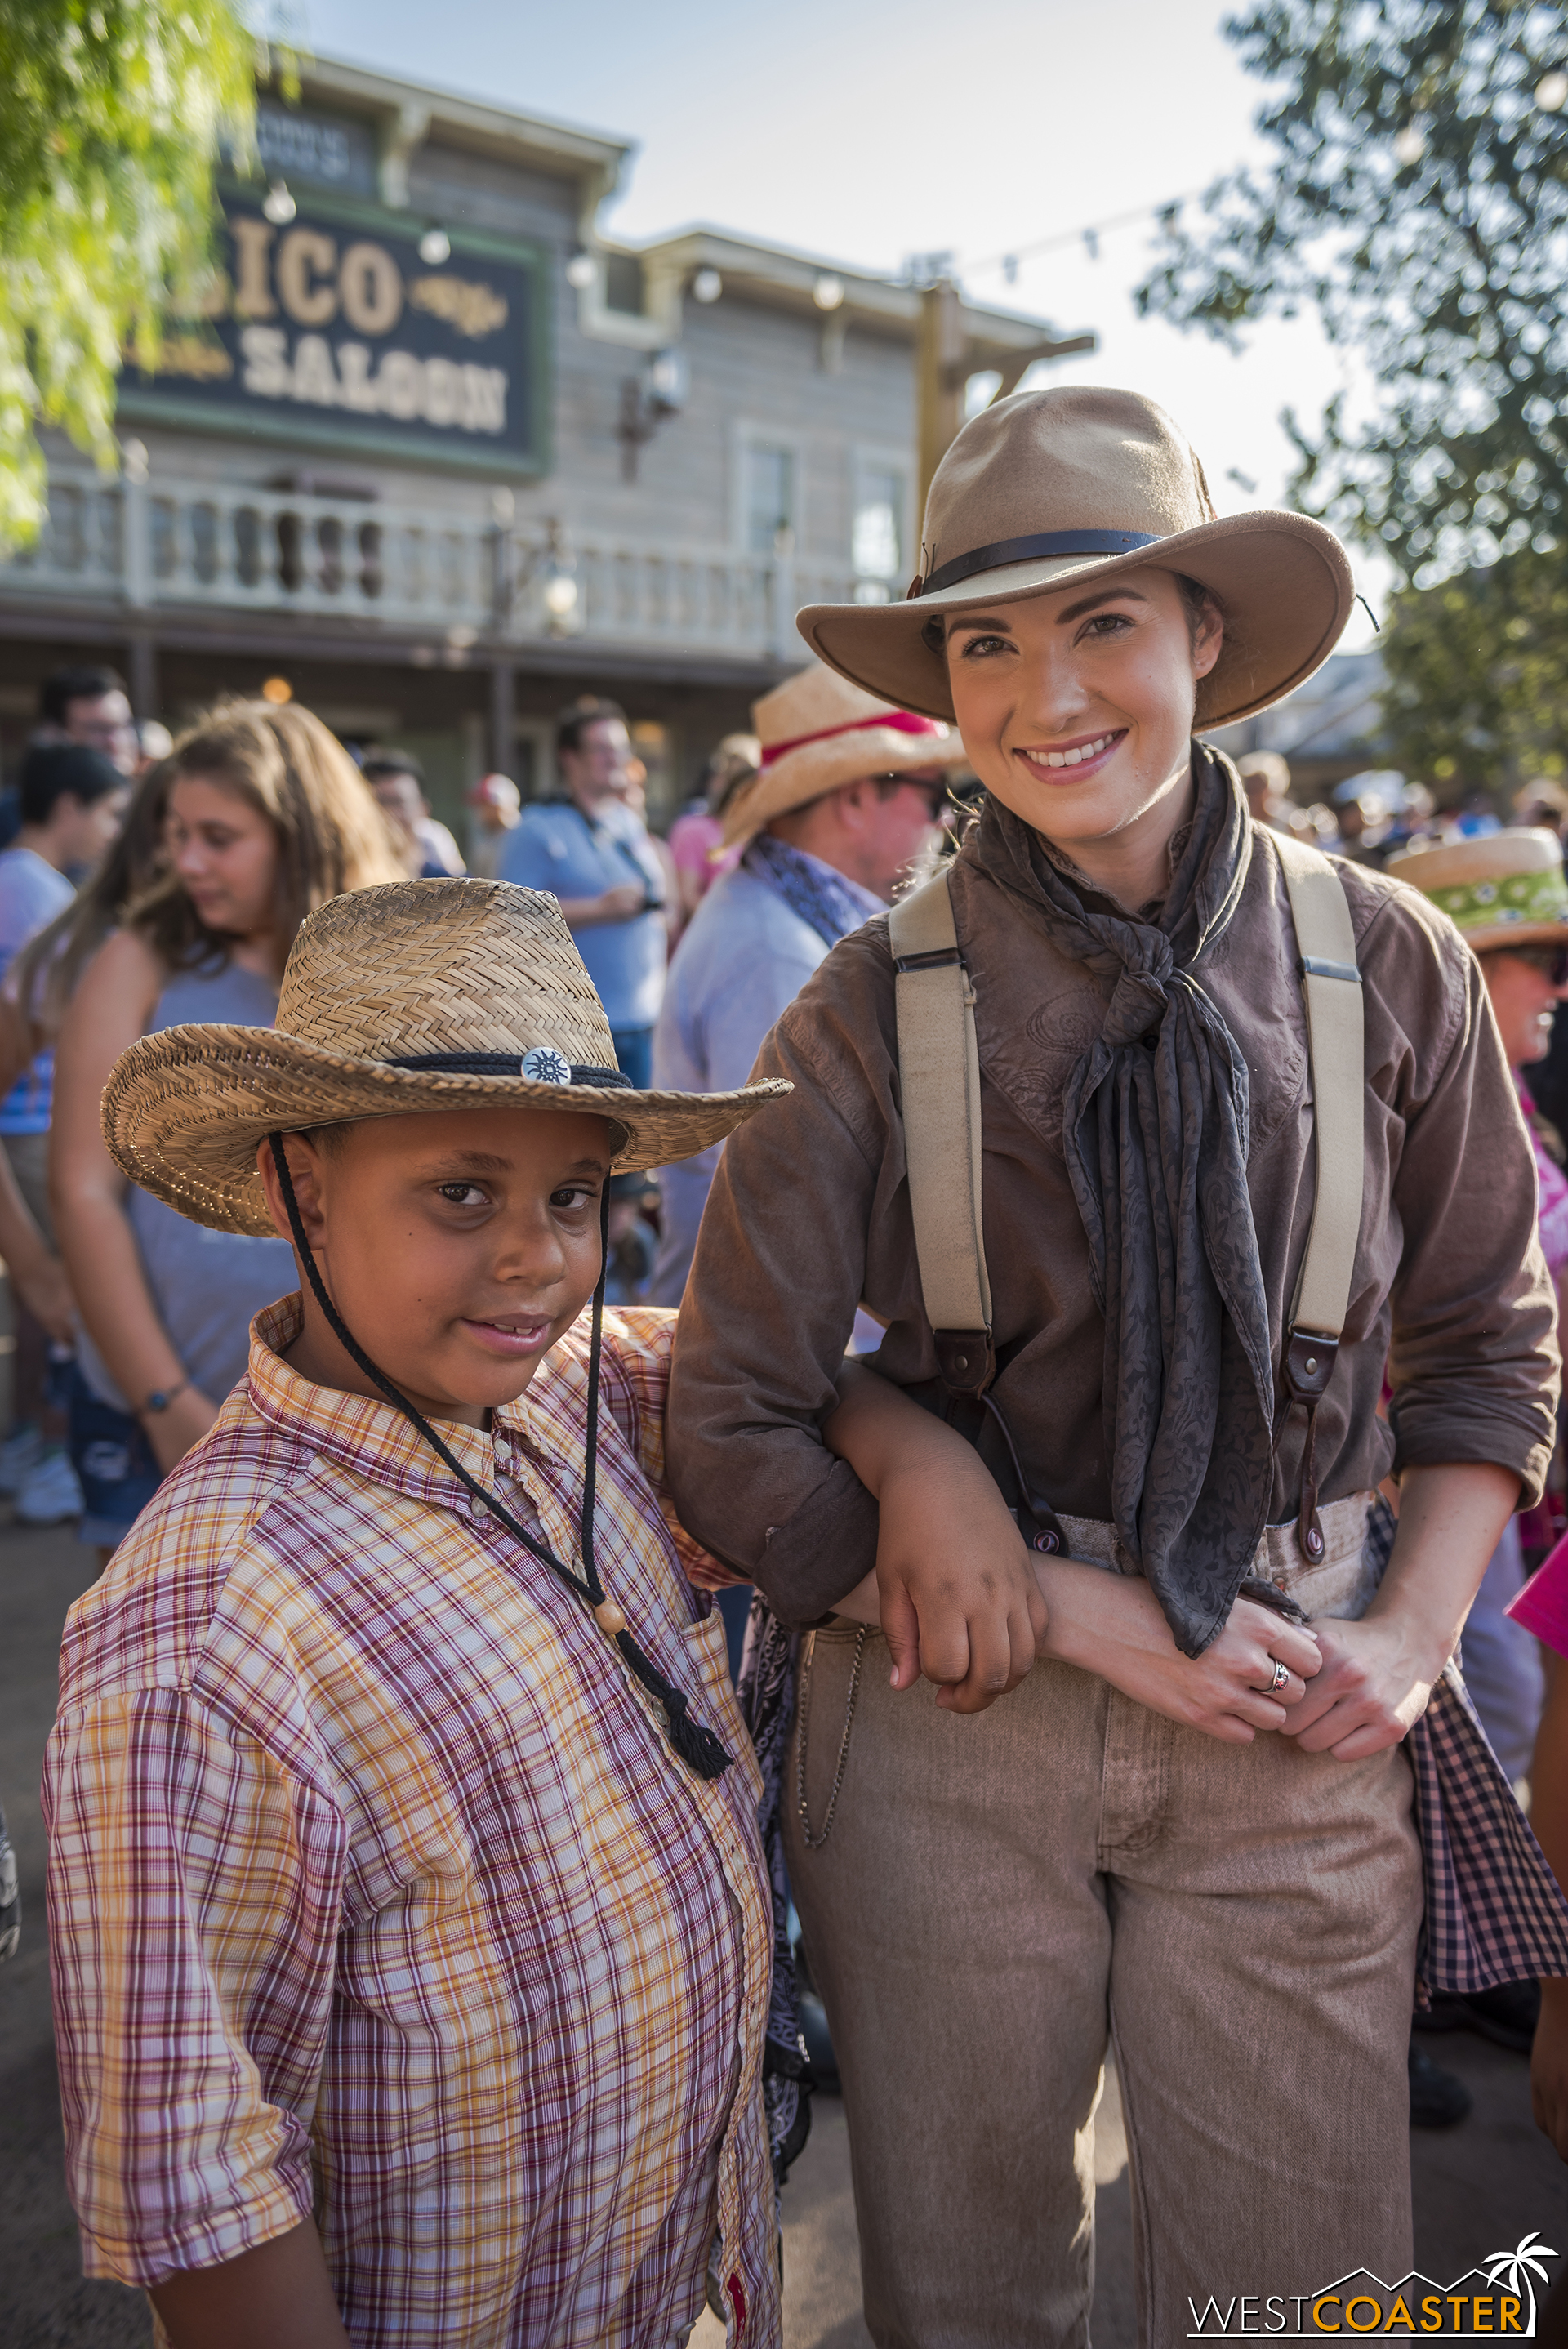 Nellie Simmons brings a young guest to the Calico hoedown.